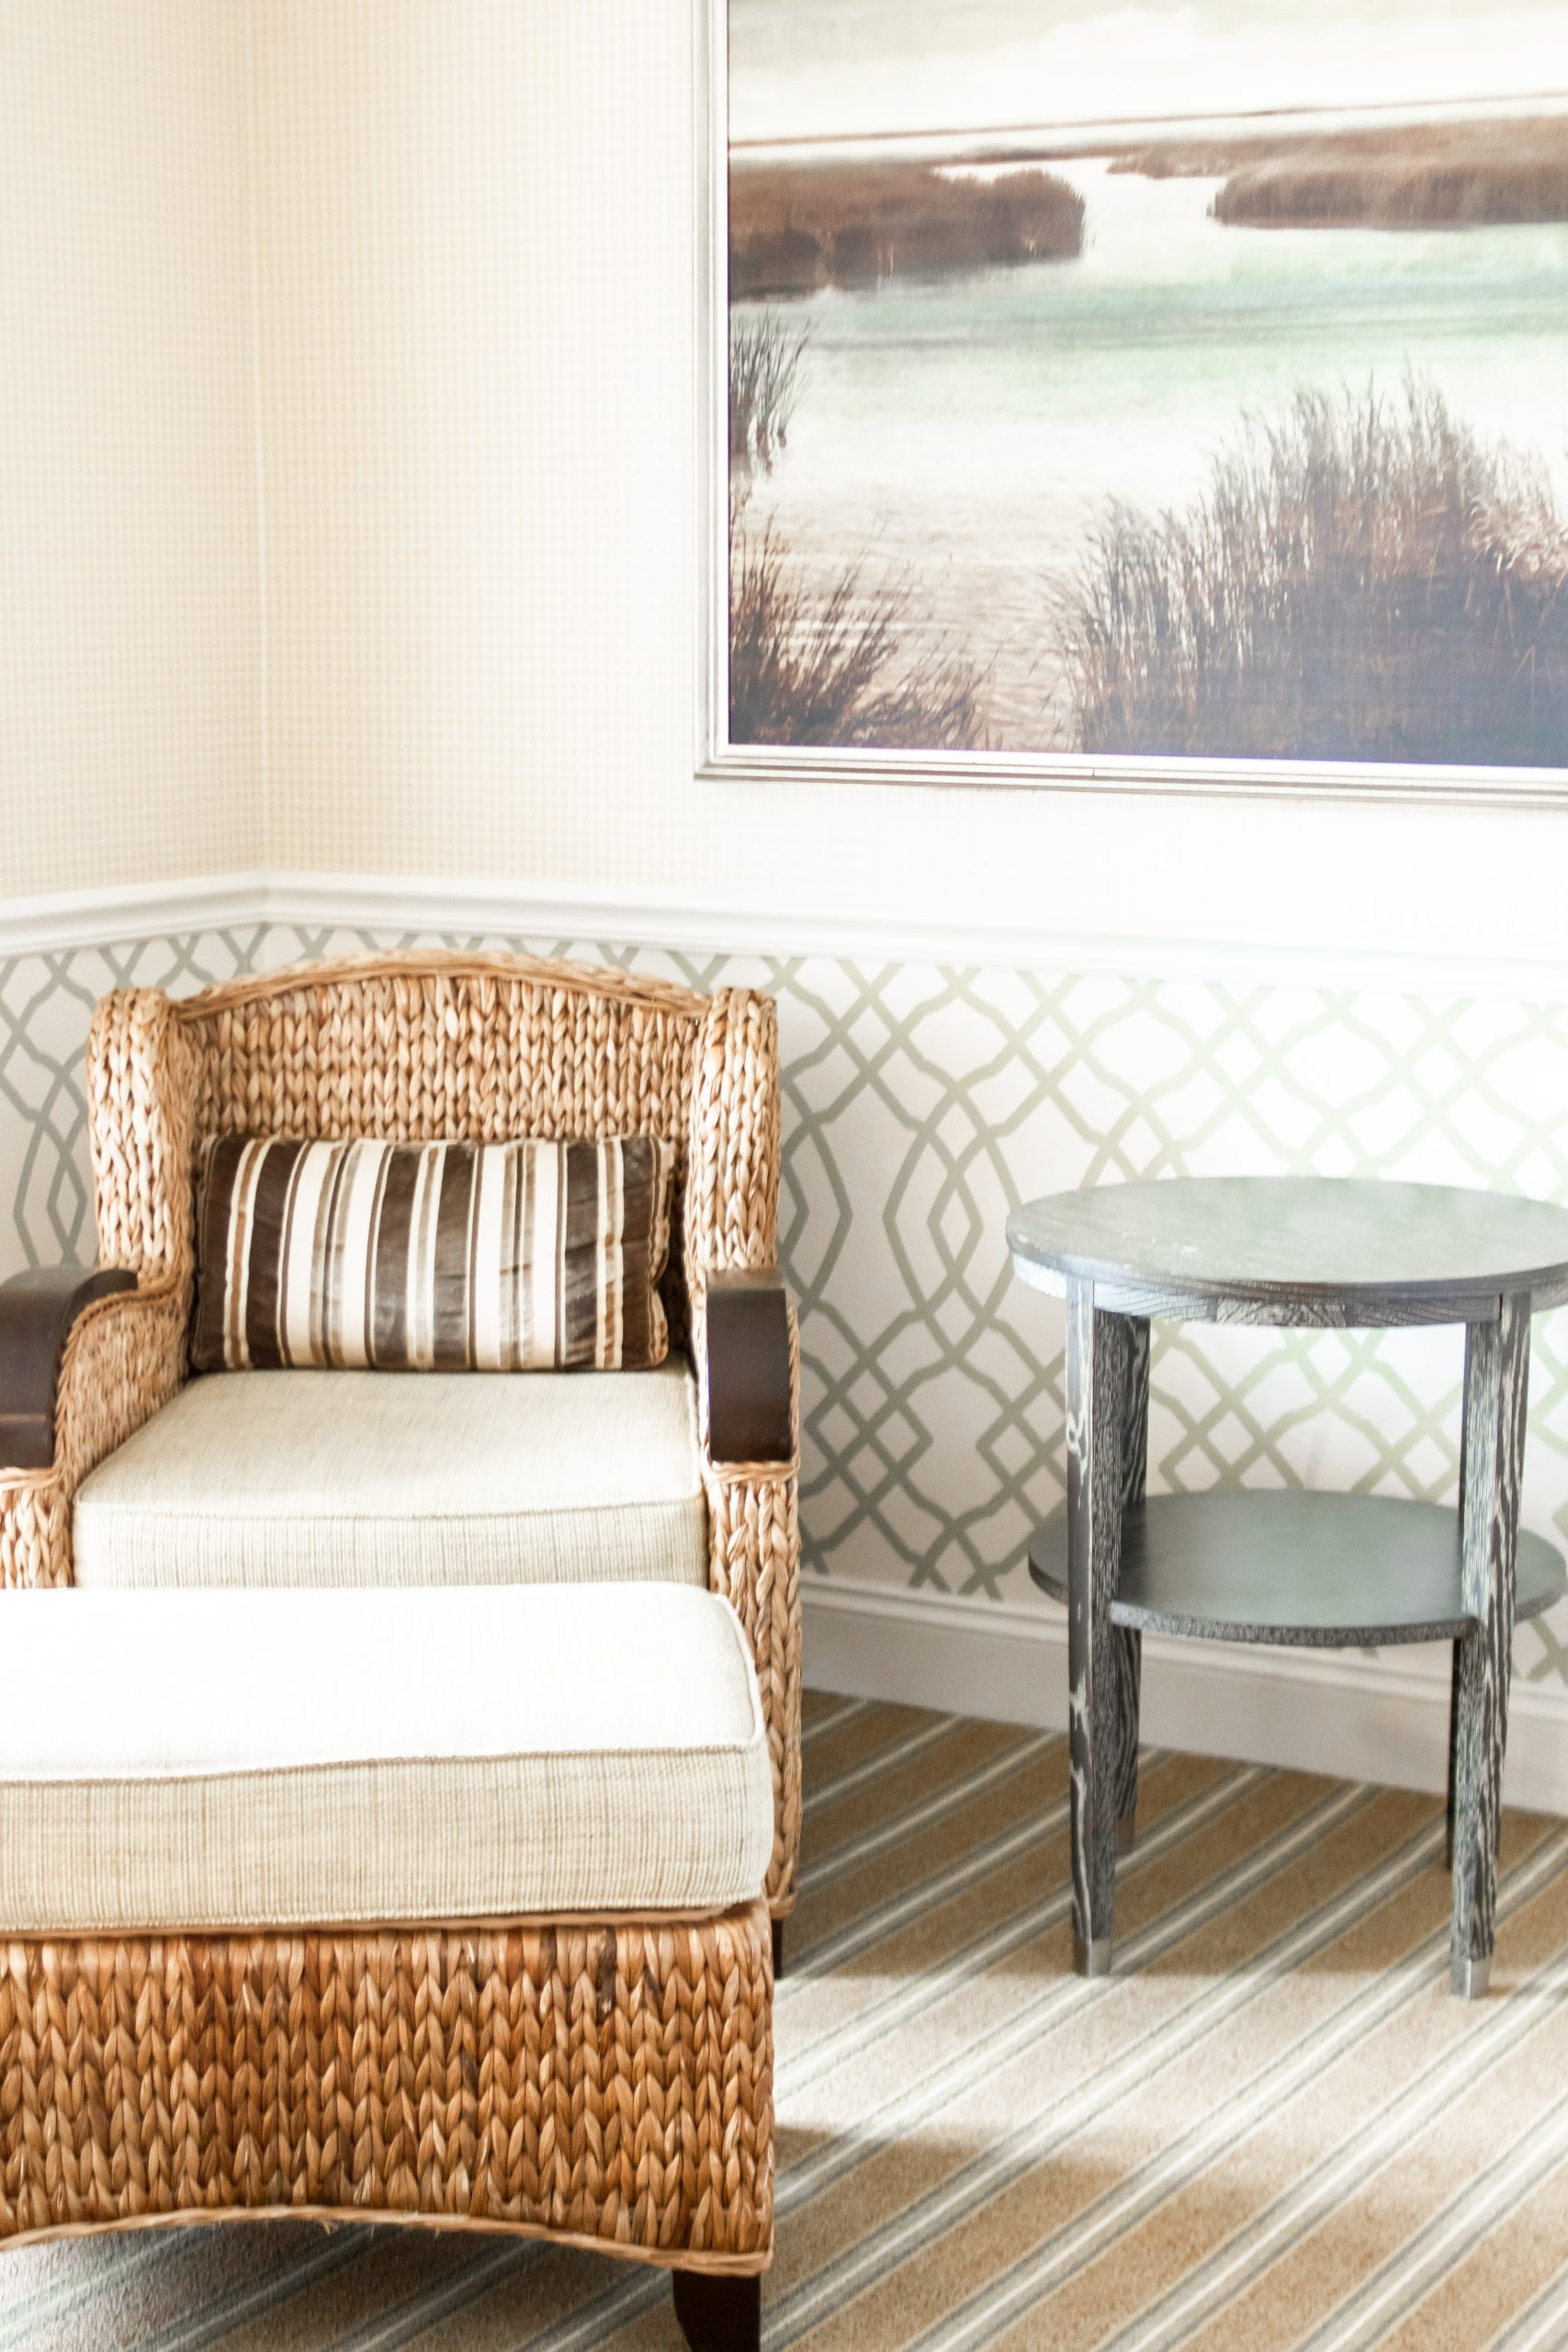 Fall Getaway to the Ocean Edge Resort in Brewster, Cape Cod - Ocean Edge Resort Accommodations at the Mansion